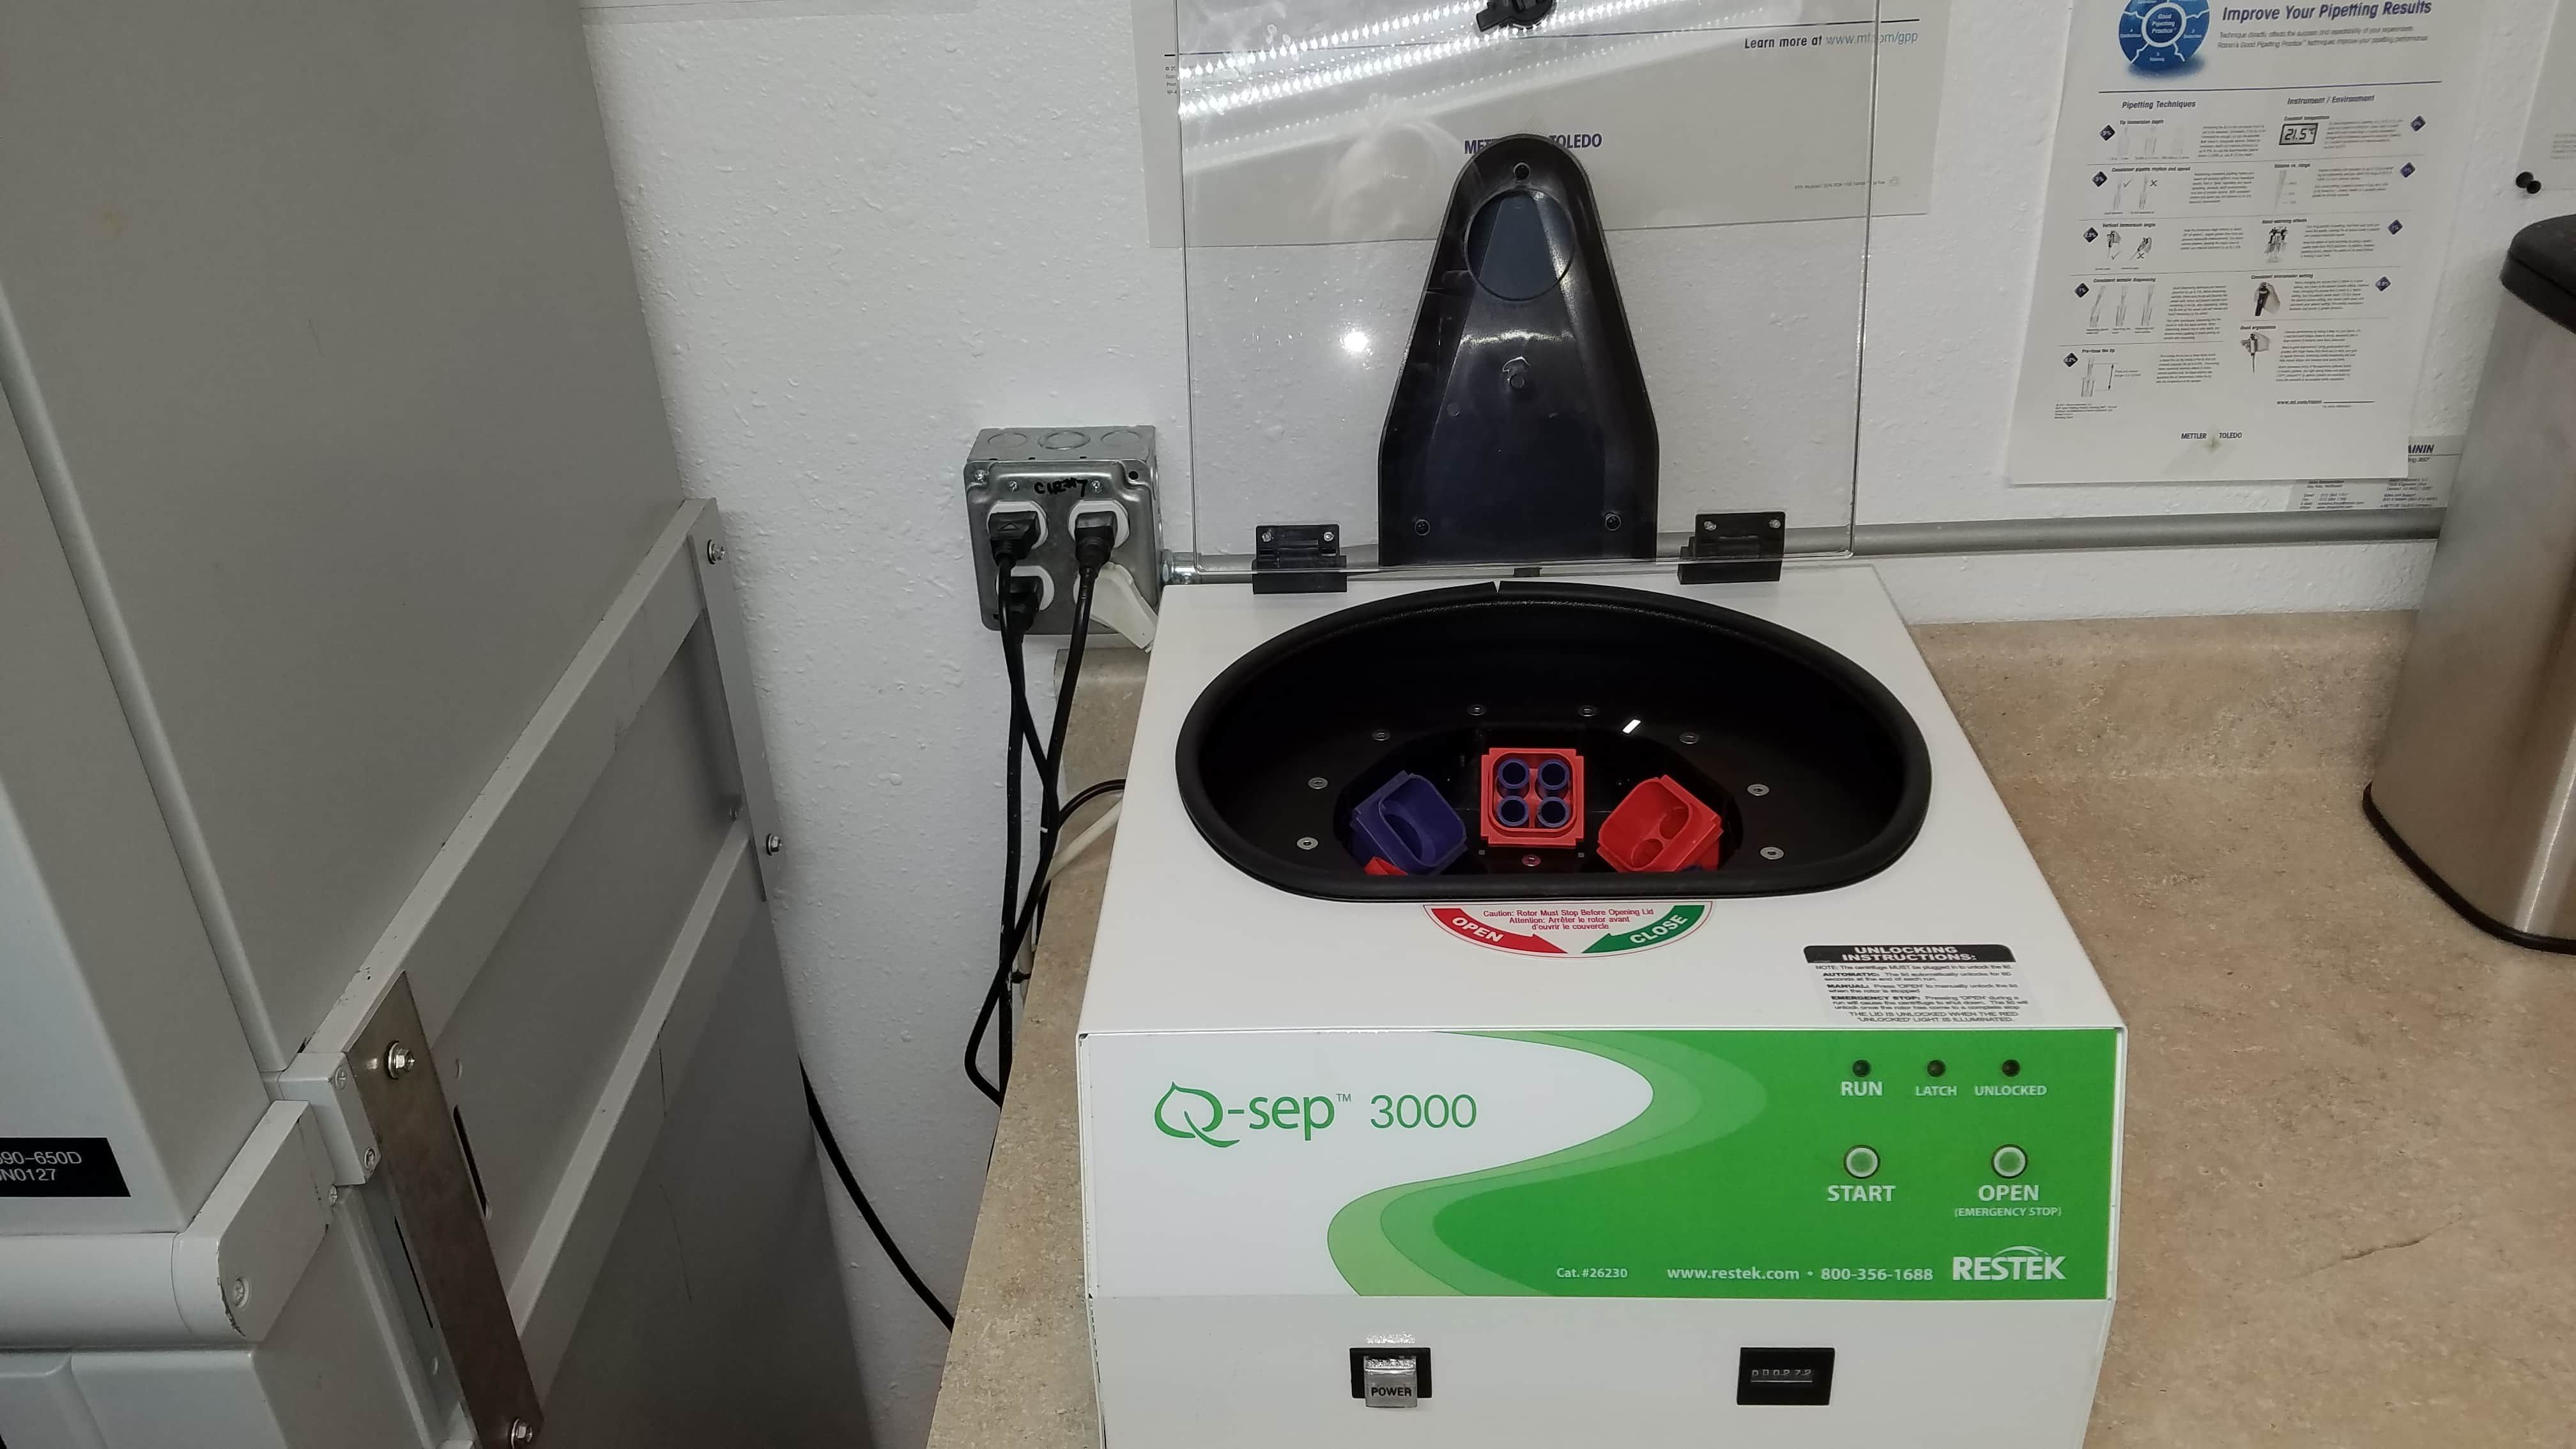 Q-Sep 3000 Benchtop Centrifuge Nearly New